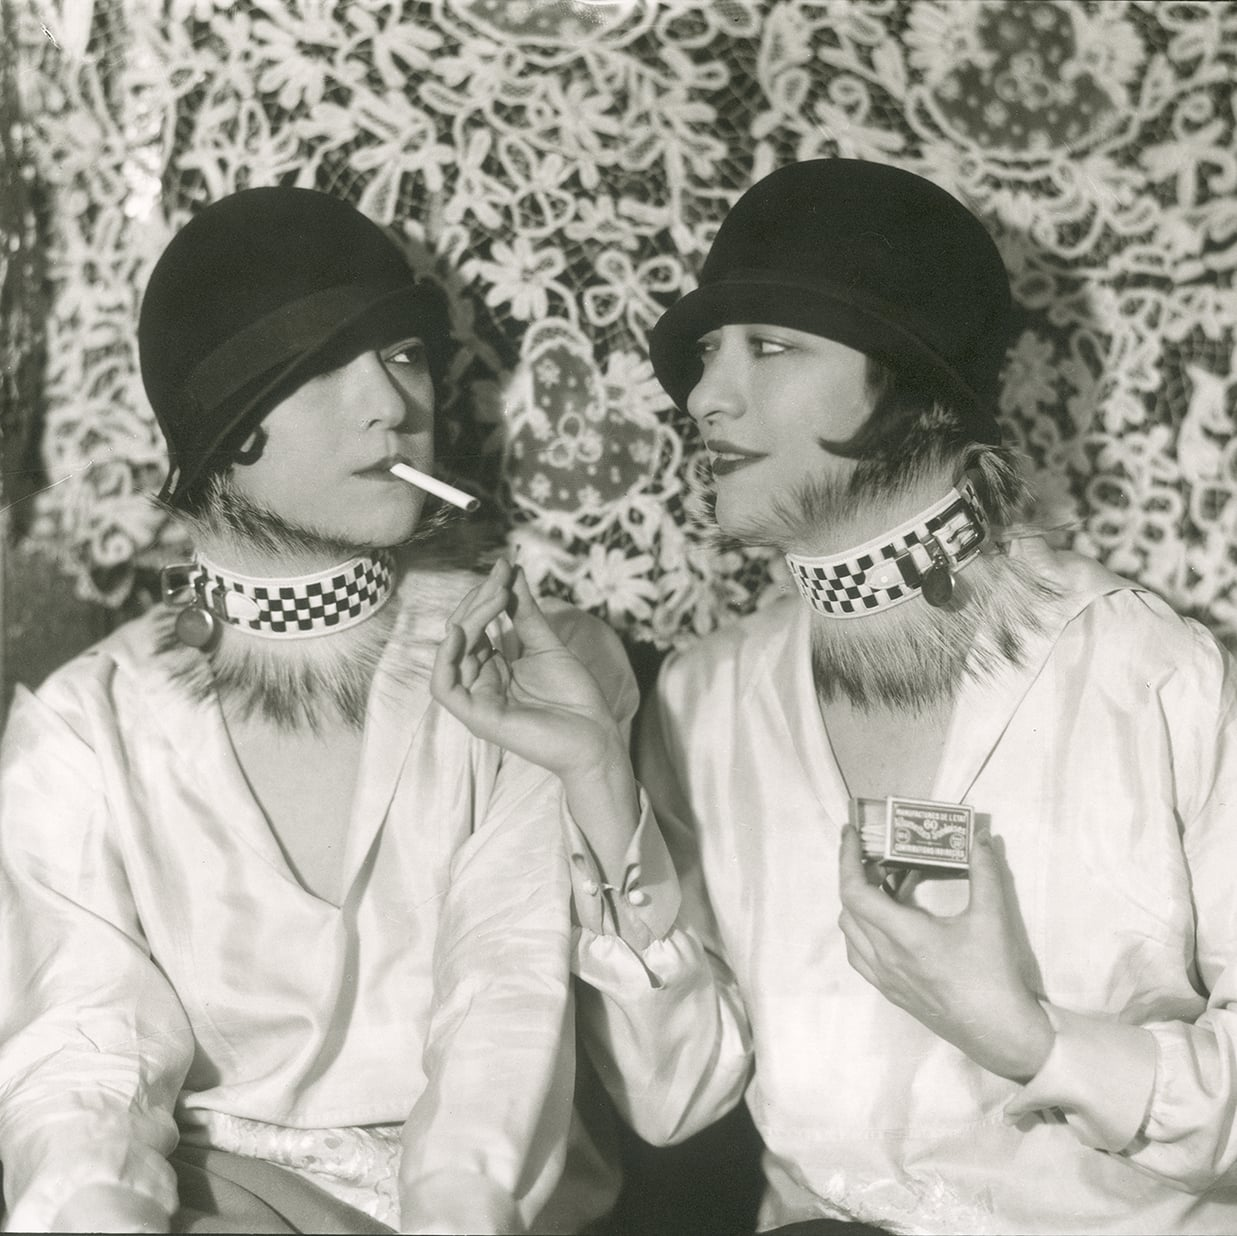 S Jazz Age Fashion And Photographs Exhibition At